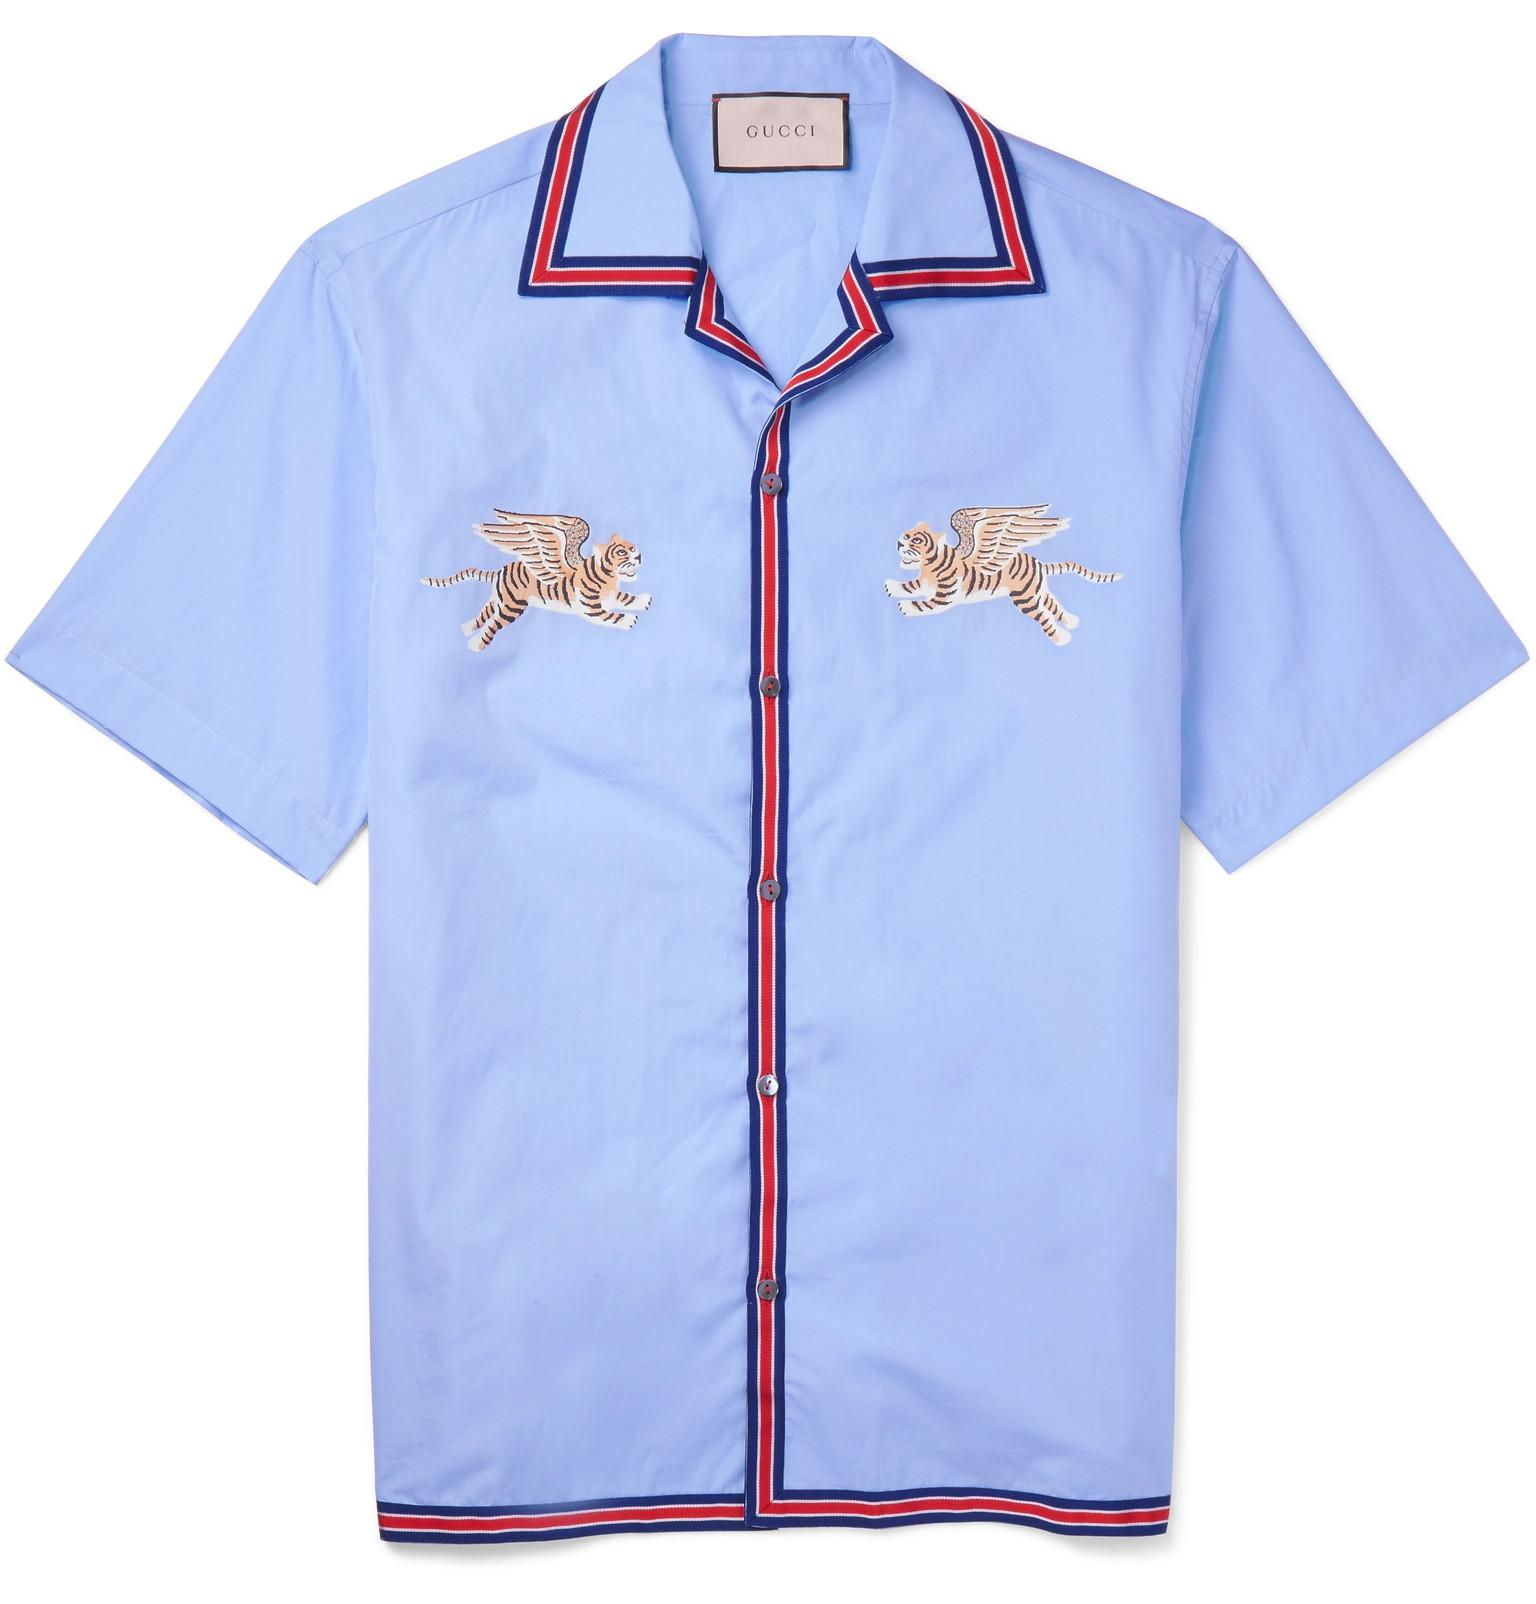 4c99c8d70 Gucci - Blue Camp-collar Embroidered Cotton Shirt for Men - Lyst. View  fullscreen